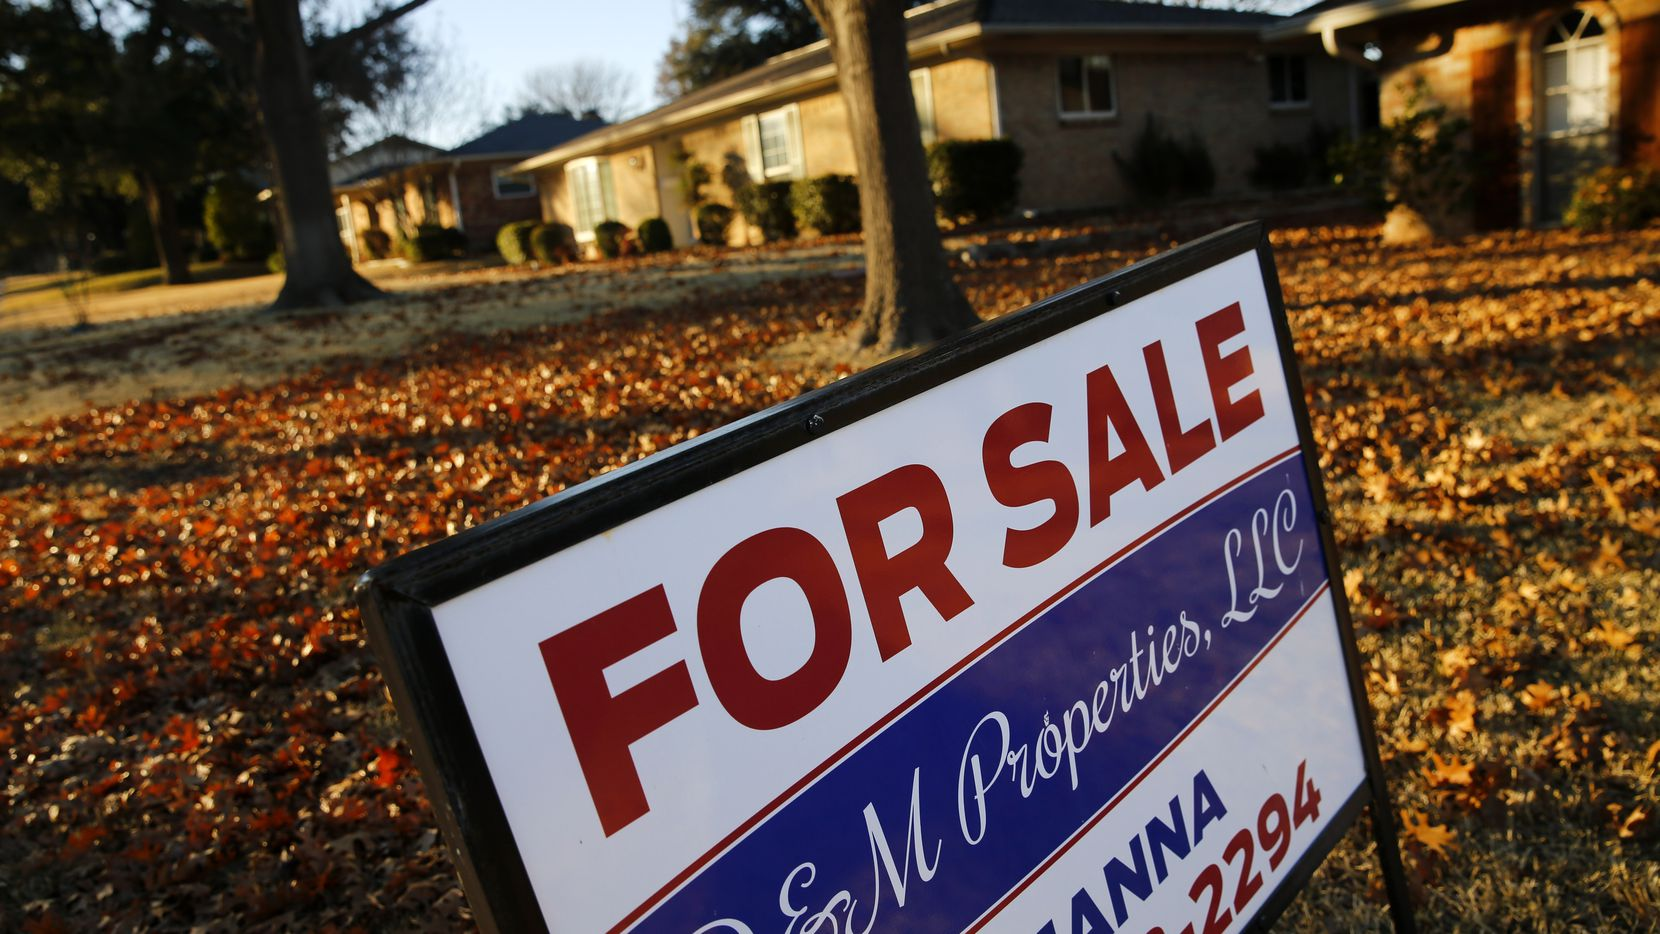 Analysts warn Dallas-Fort Worth home prices are overvalued by 15 percent to 19 percent.